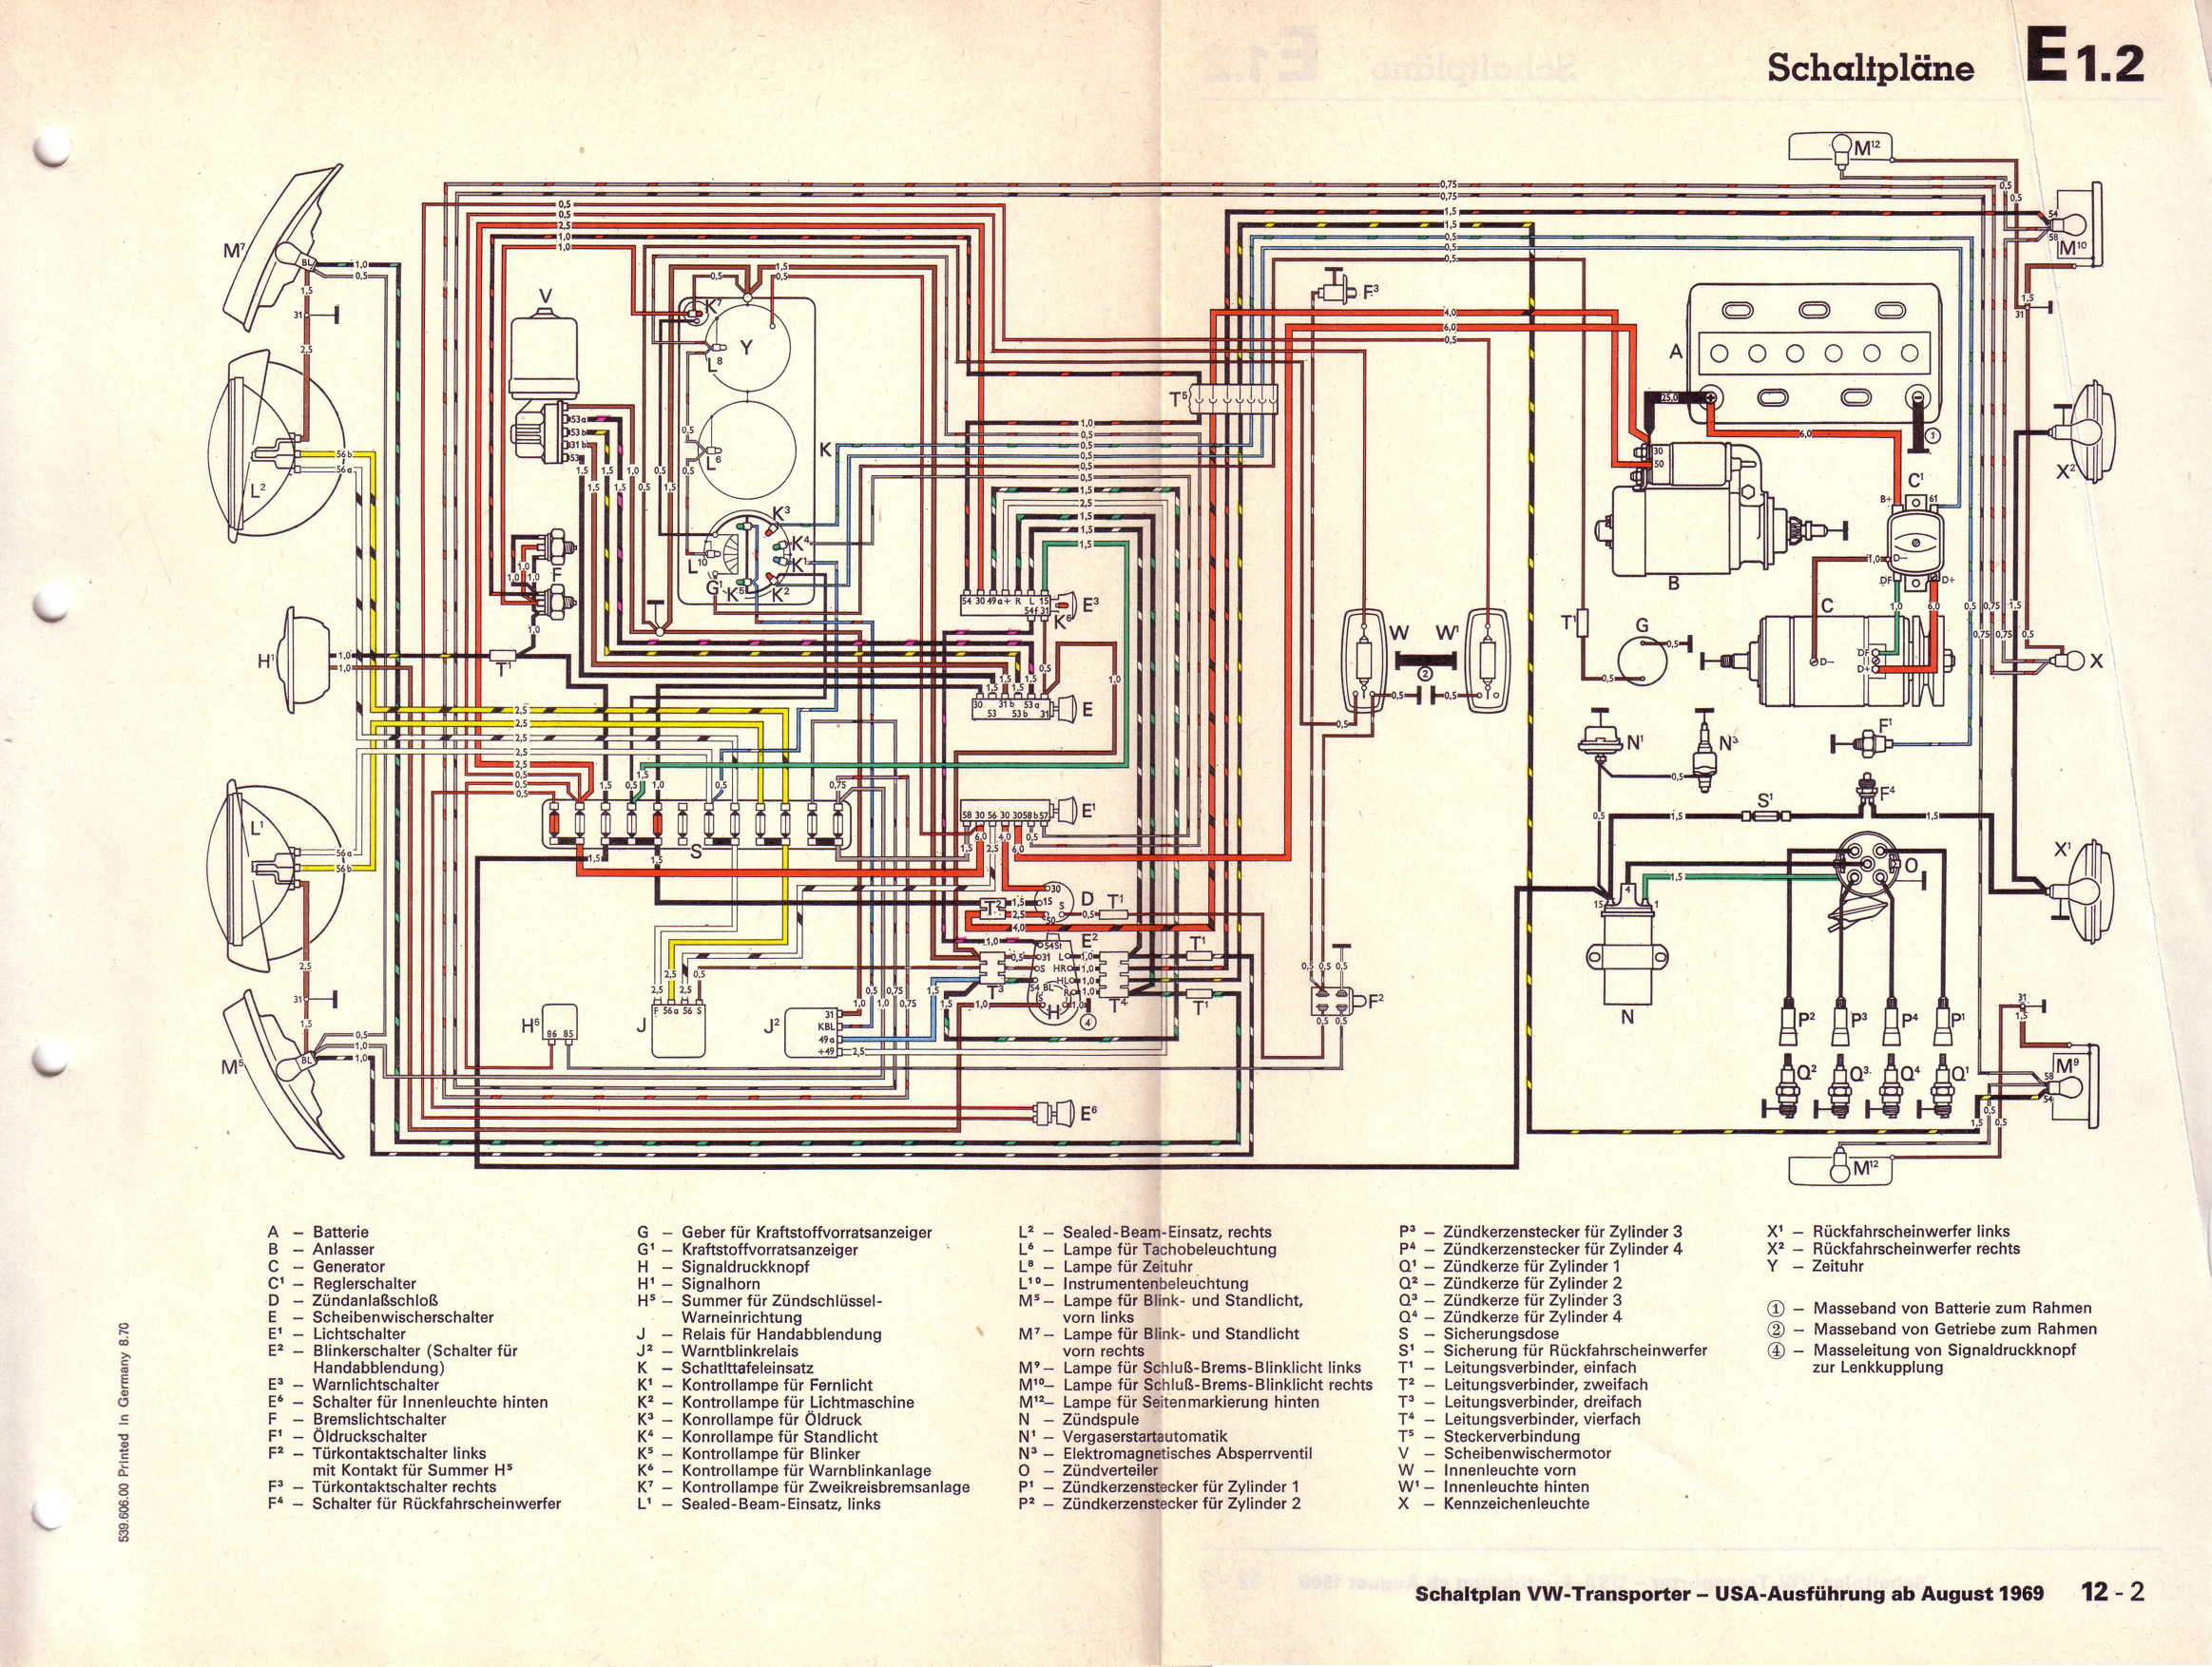 1976 Vw Wiring Diagram Great Design Of Bus Fuse 1970 08 T2 Carburetor Beetle Kombi